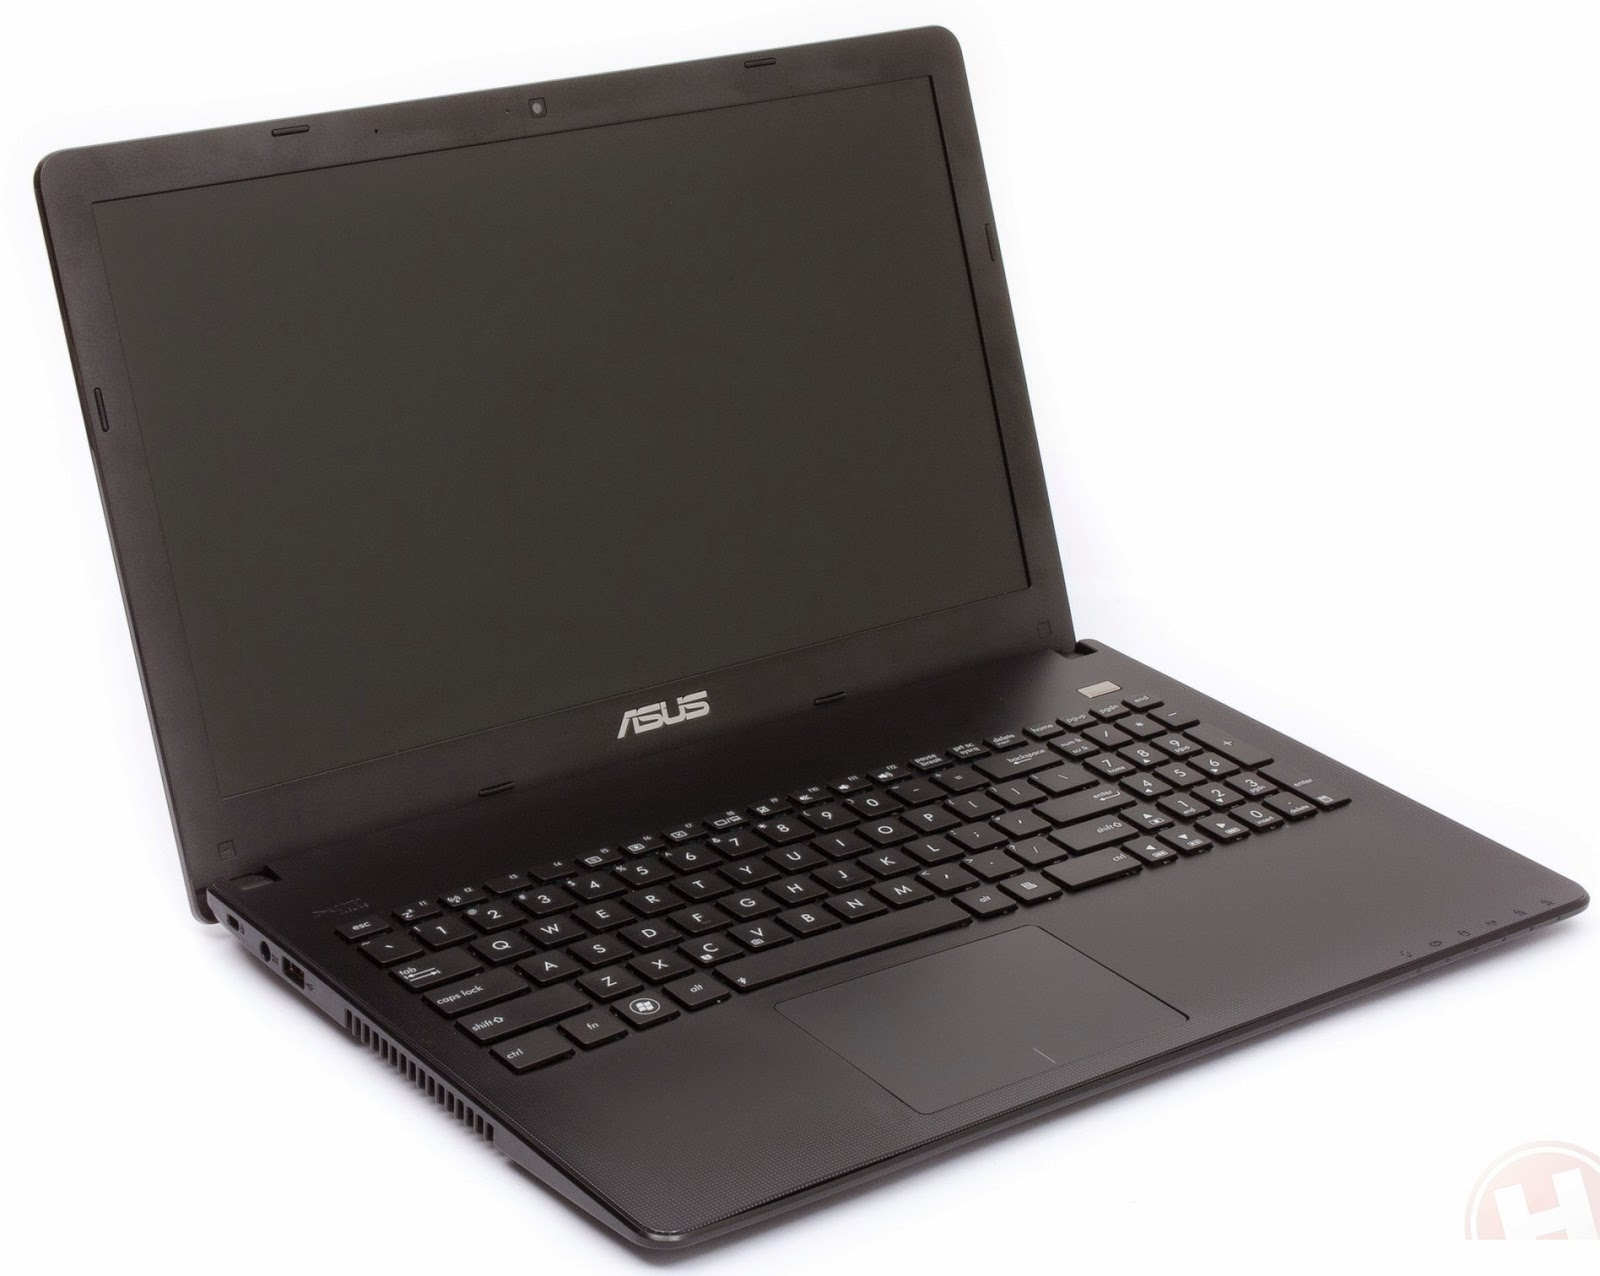 Asus K84H Drivers For Windows 8 (64bit)